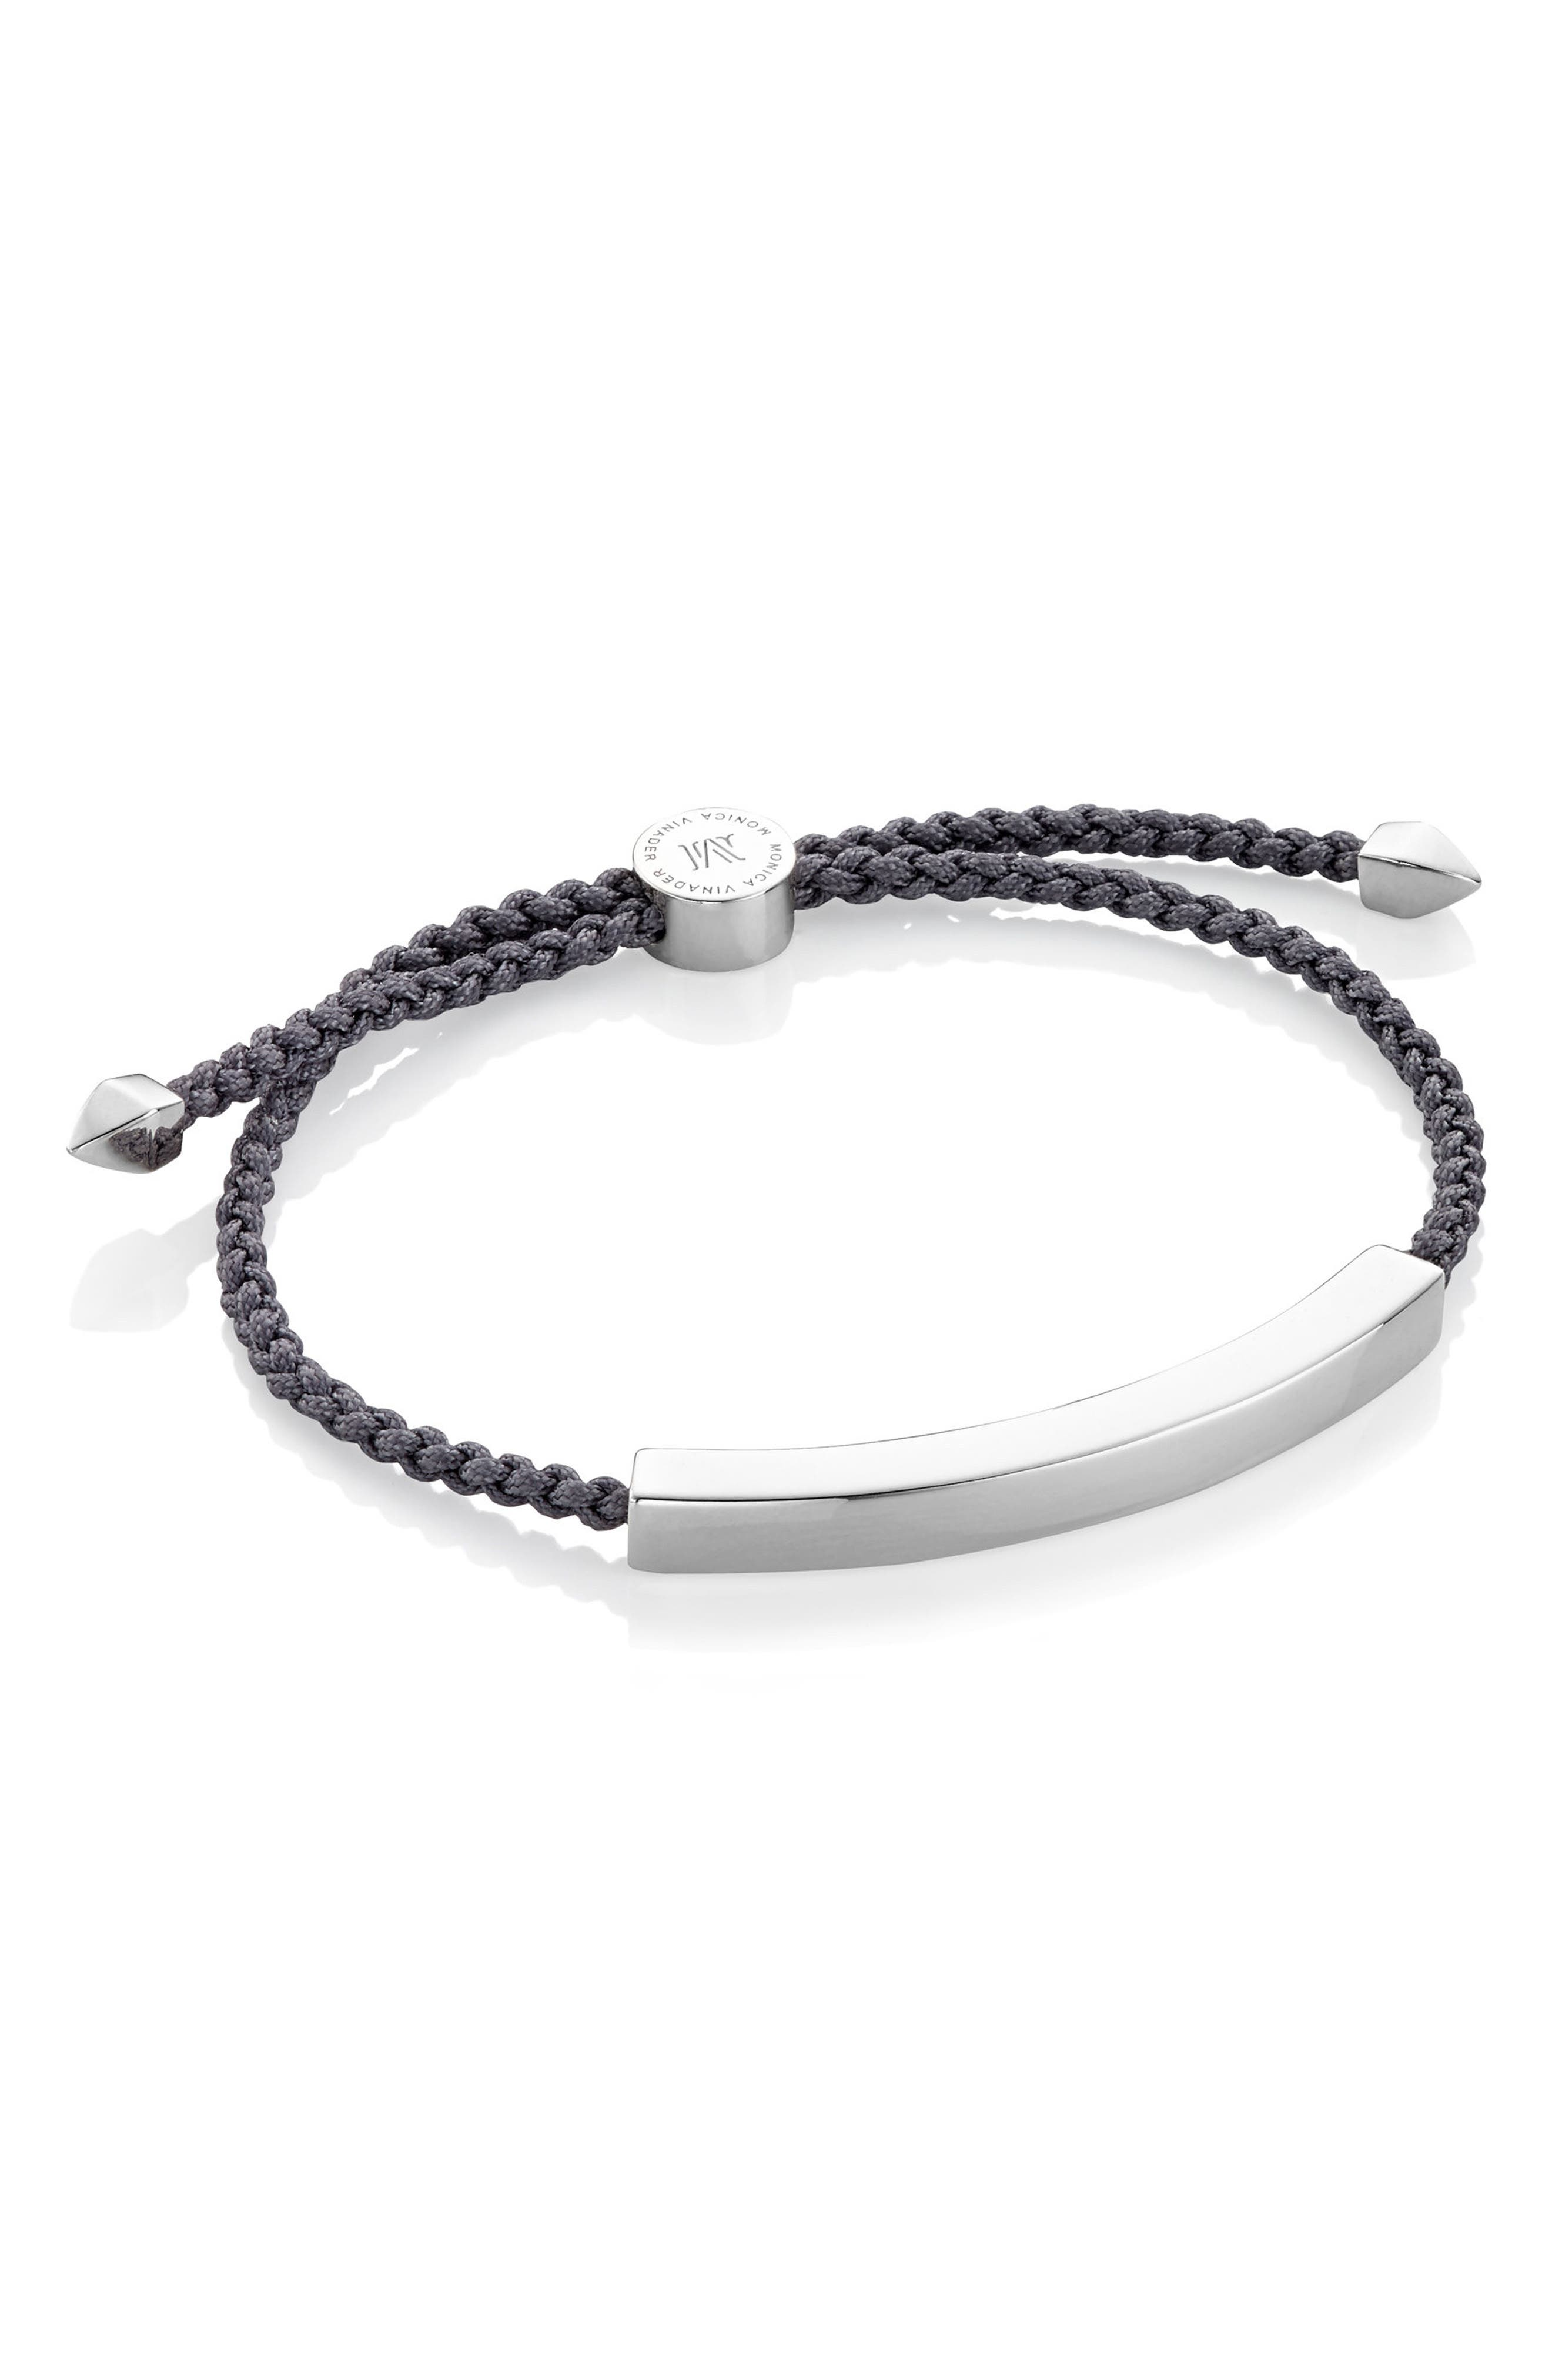 Monica Vinader Men's Friendship Bracelet